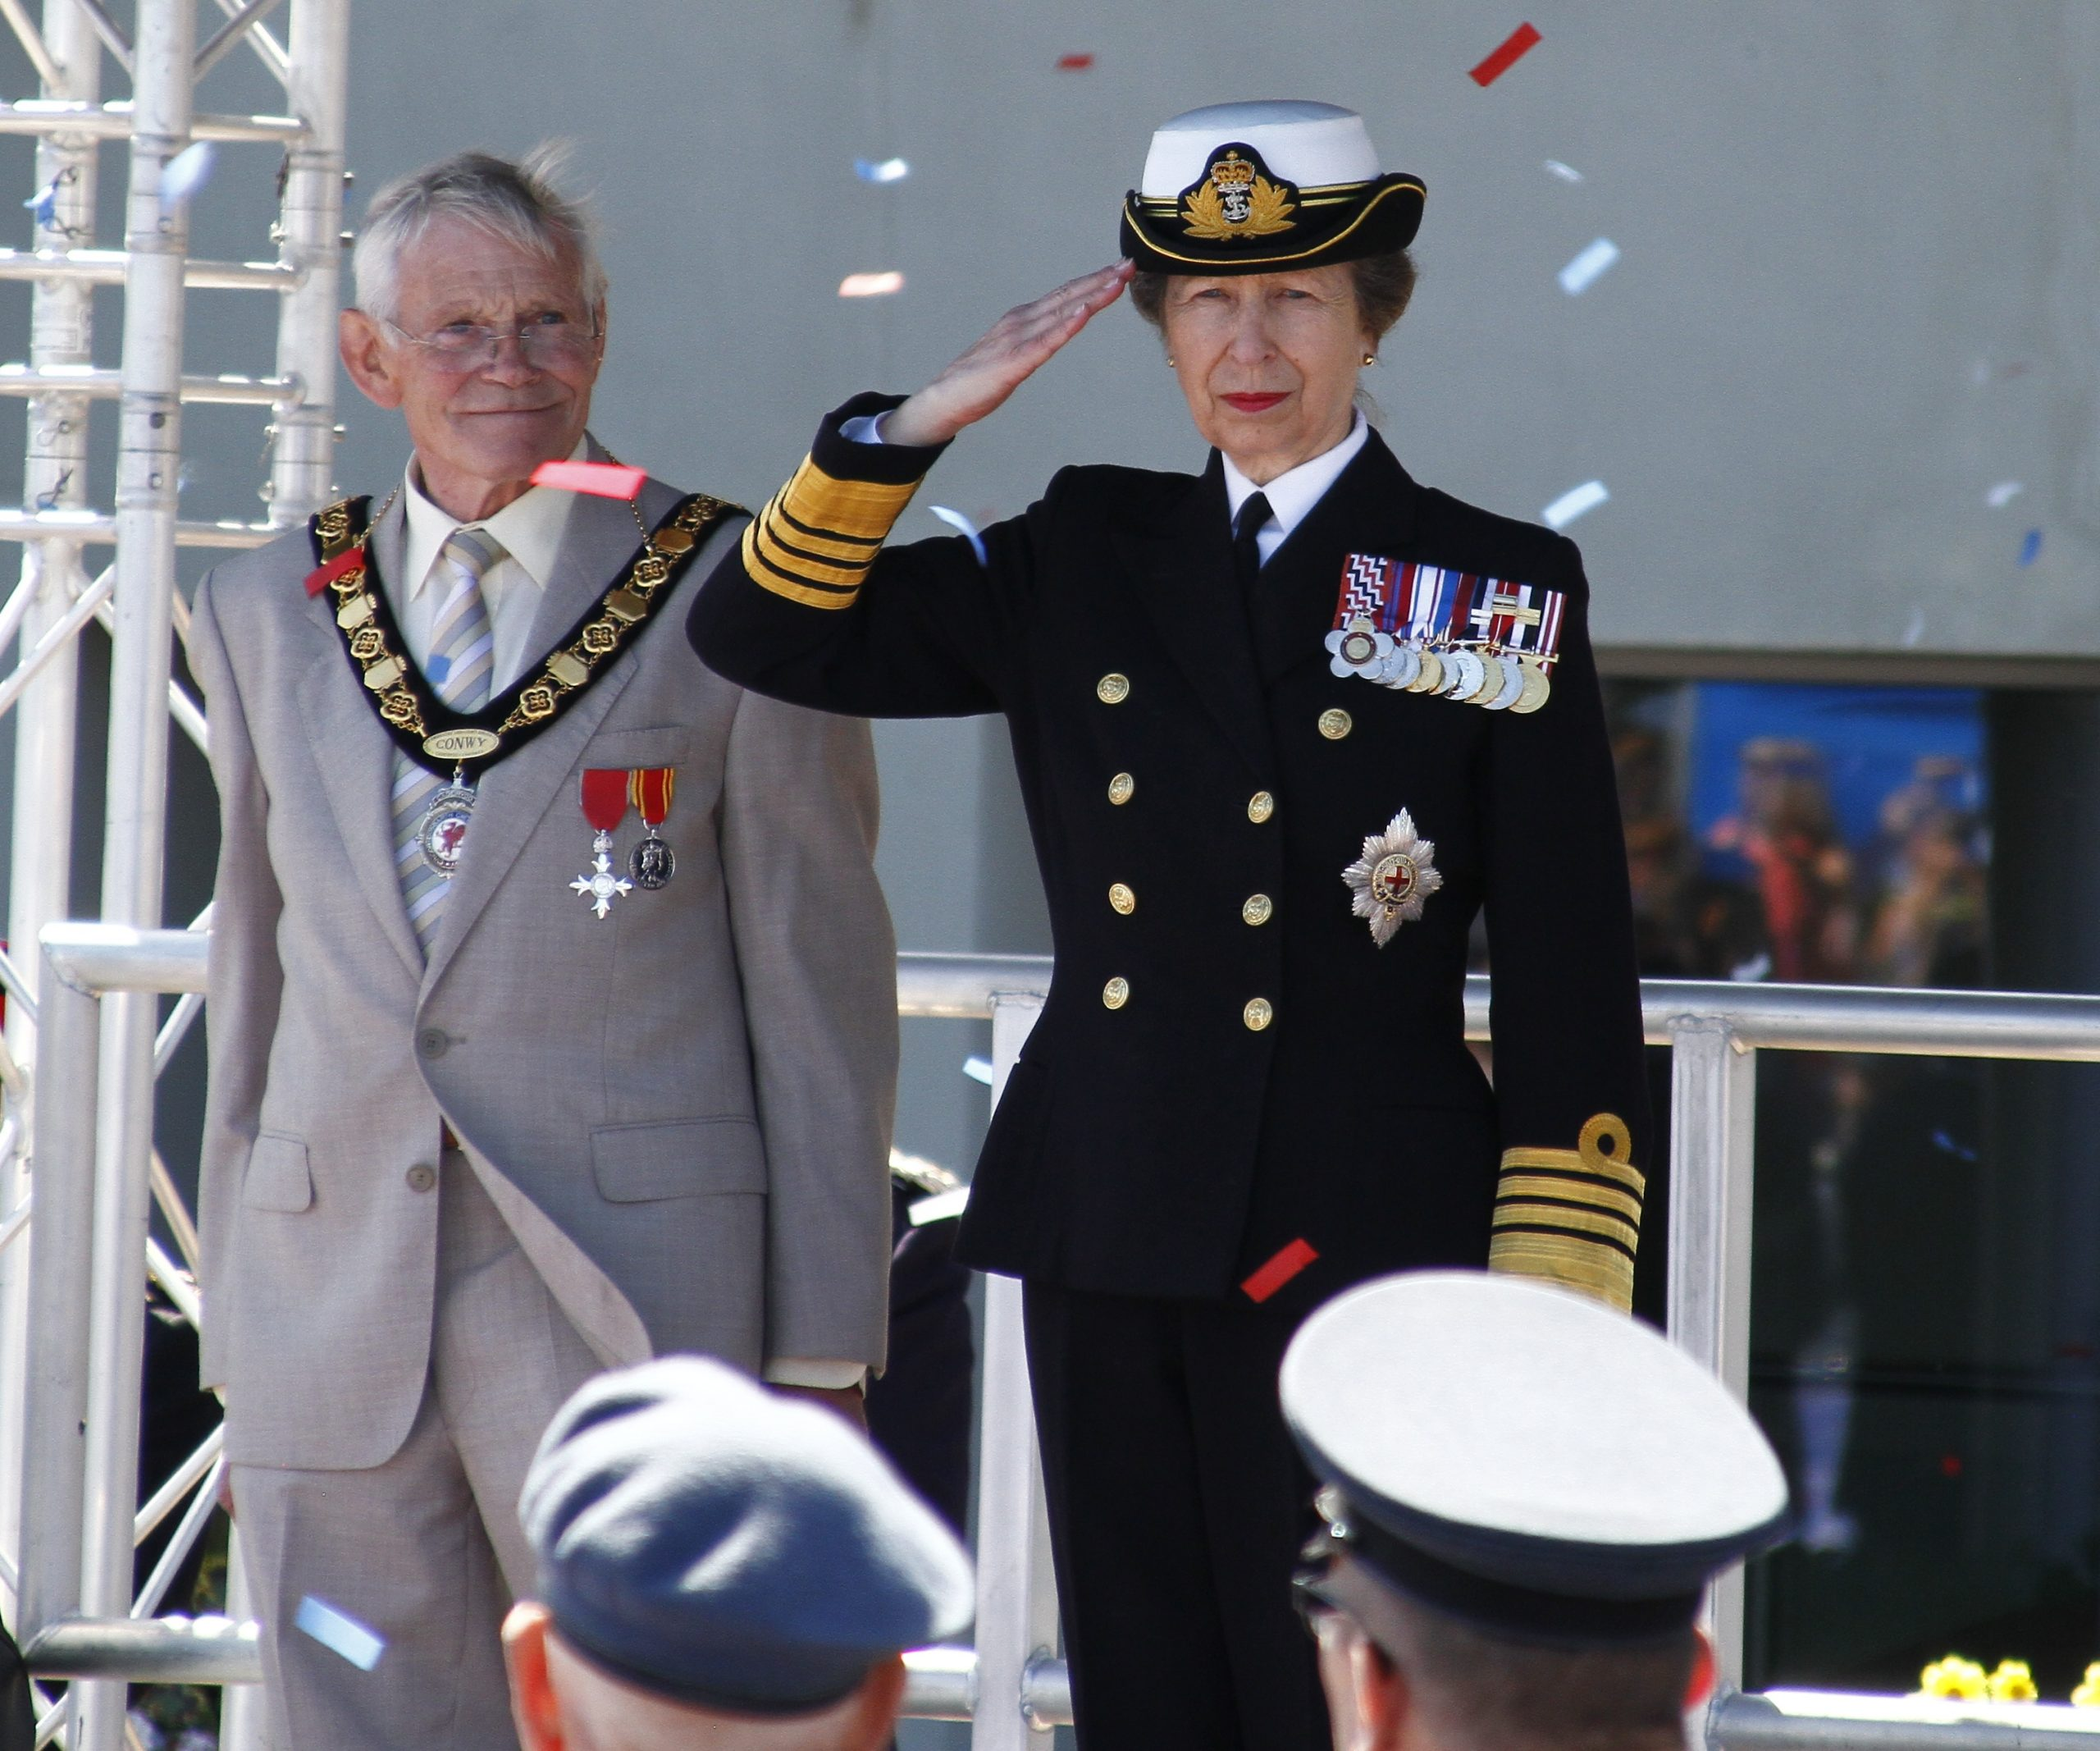 Princess Anne is to replace Harry as Captain General